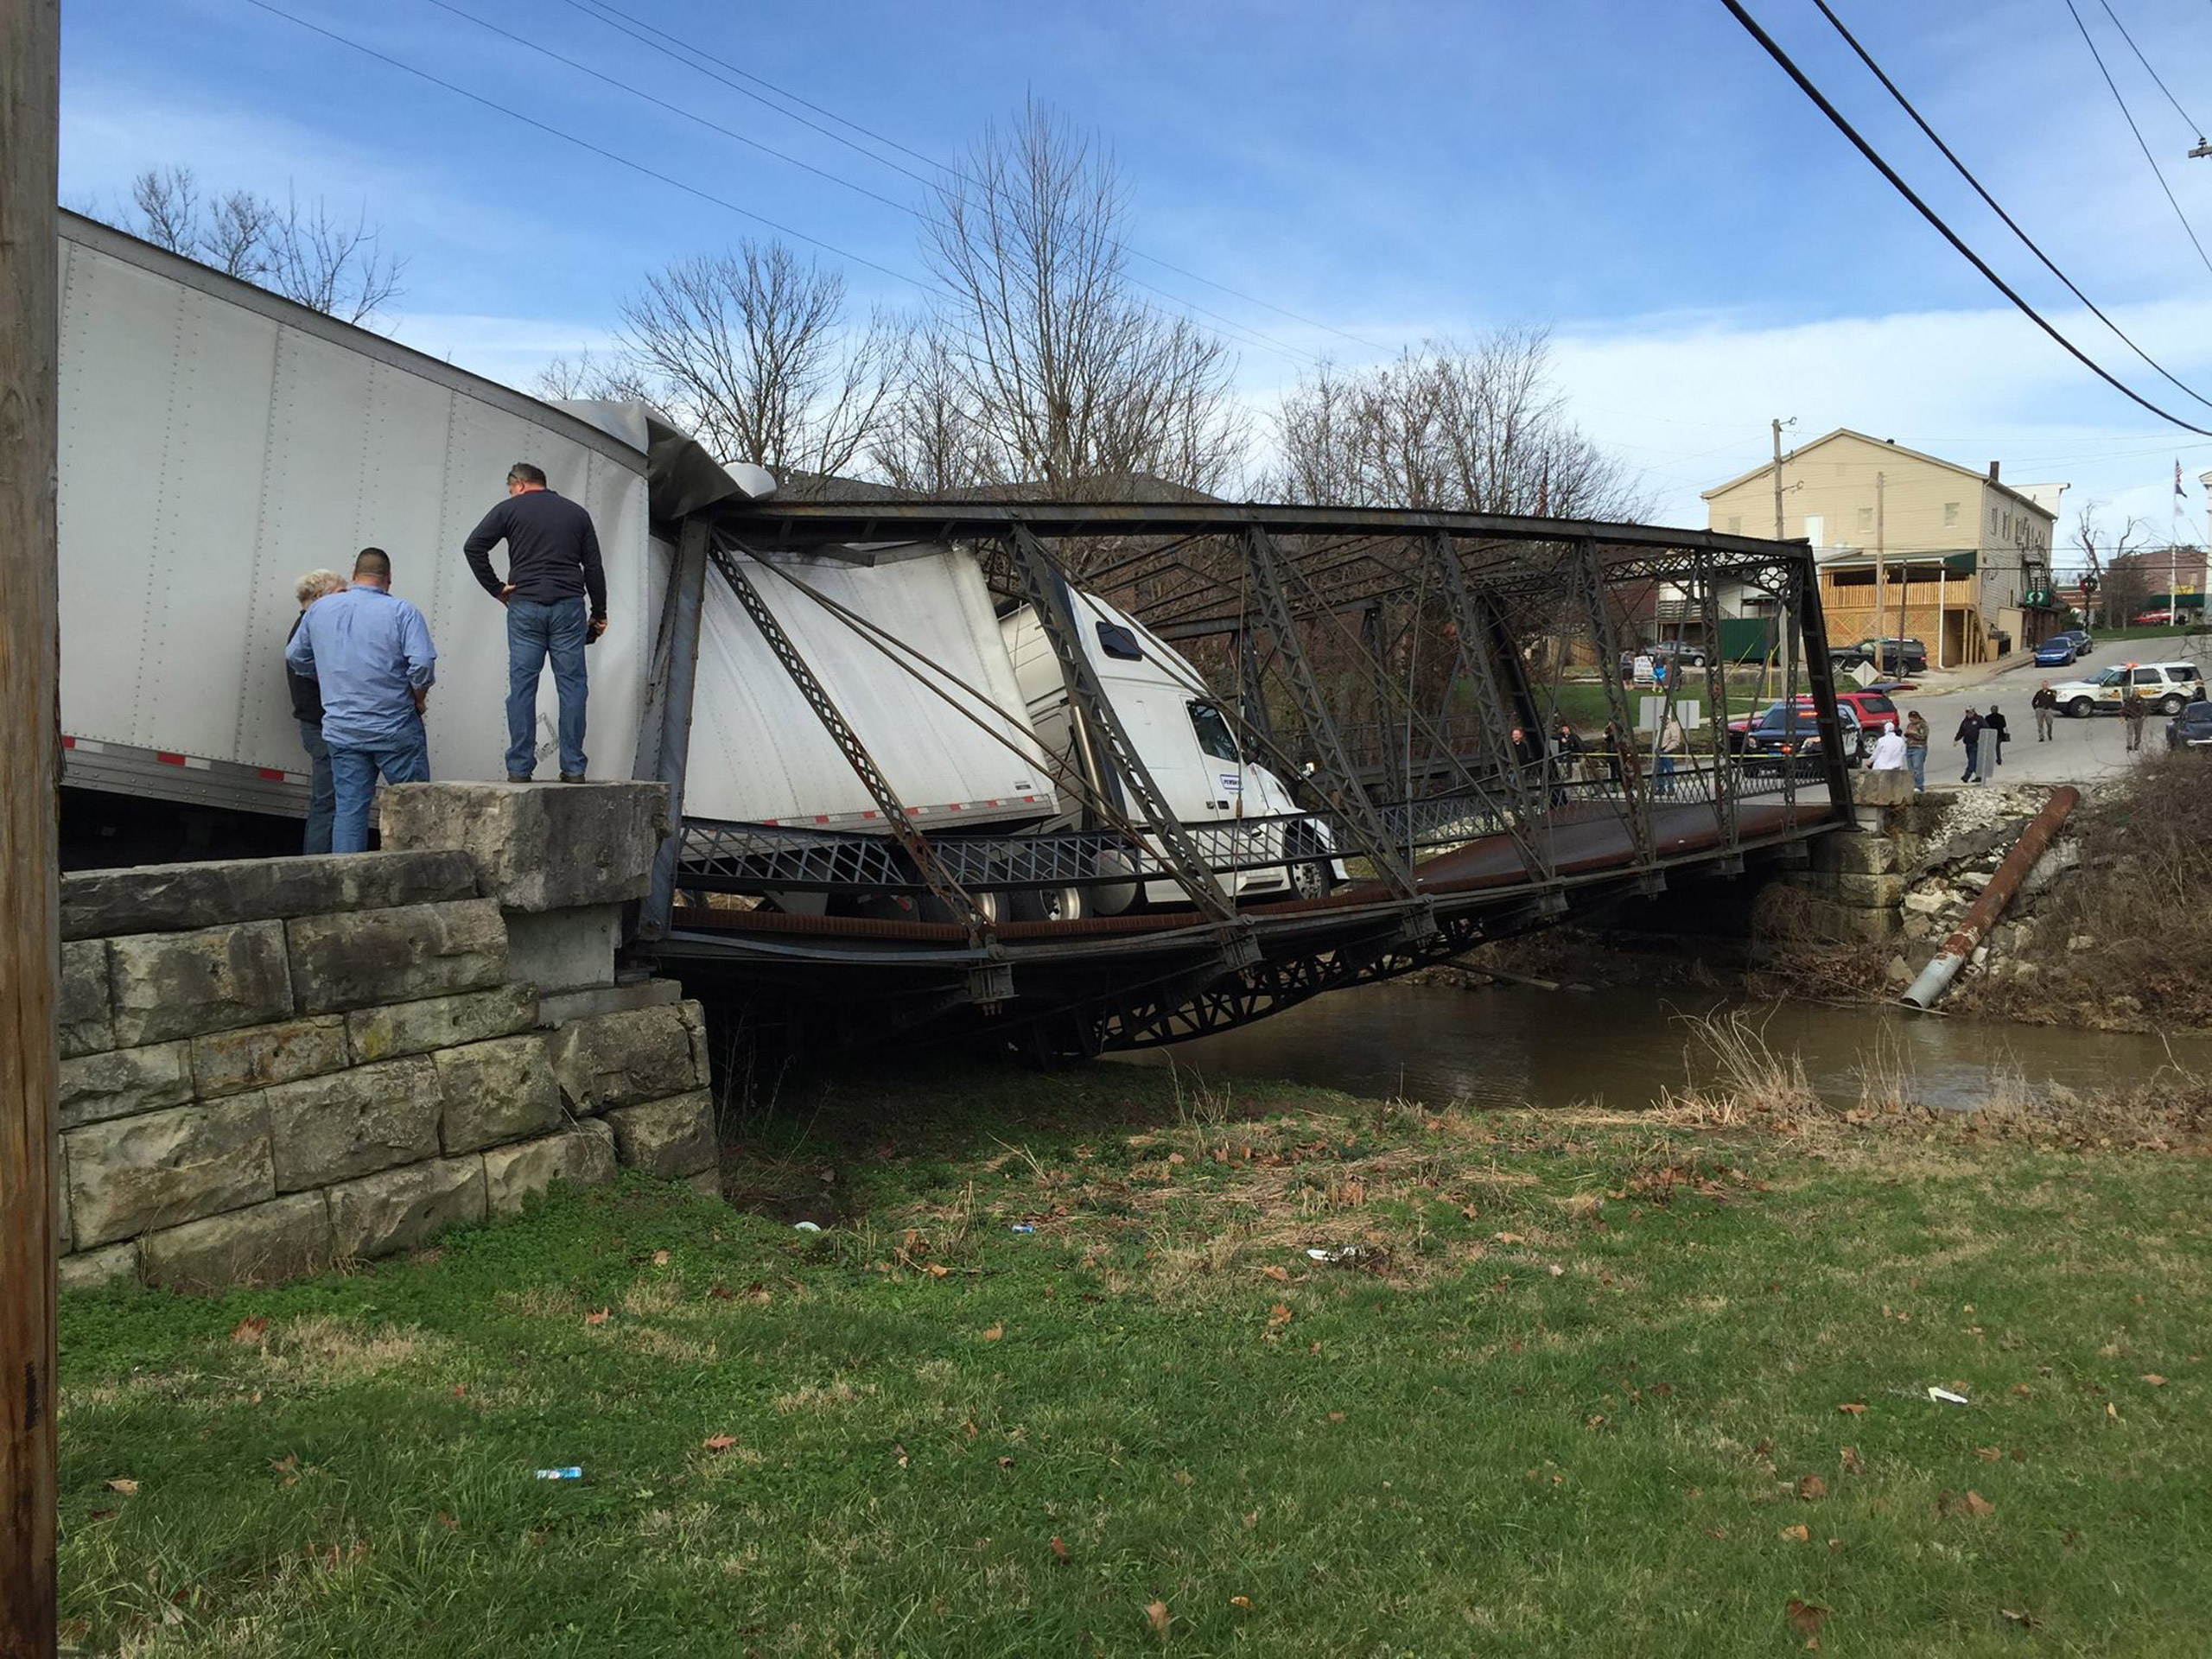 A bridge collapsed under a semitrailer weighing close to 30 tons that tried to cross it in Paoli, Ind., on Christmas.